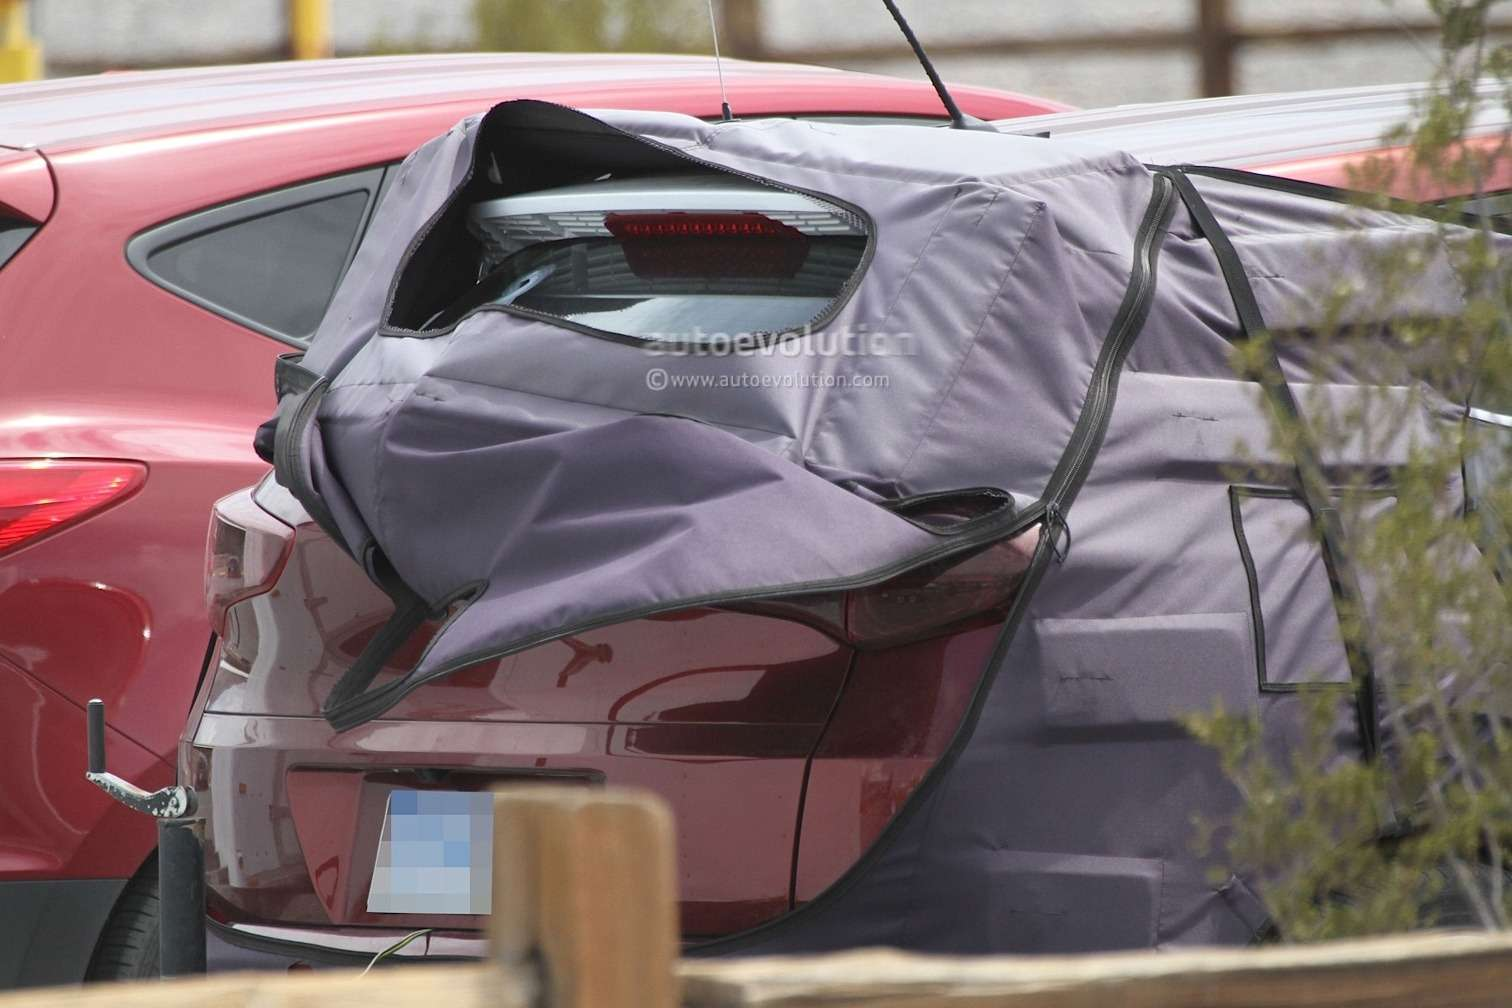 all-new-2016-hyundai-tucson-spied-with-less-camouflage-in-america-photo-gallery-1080p-17